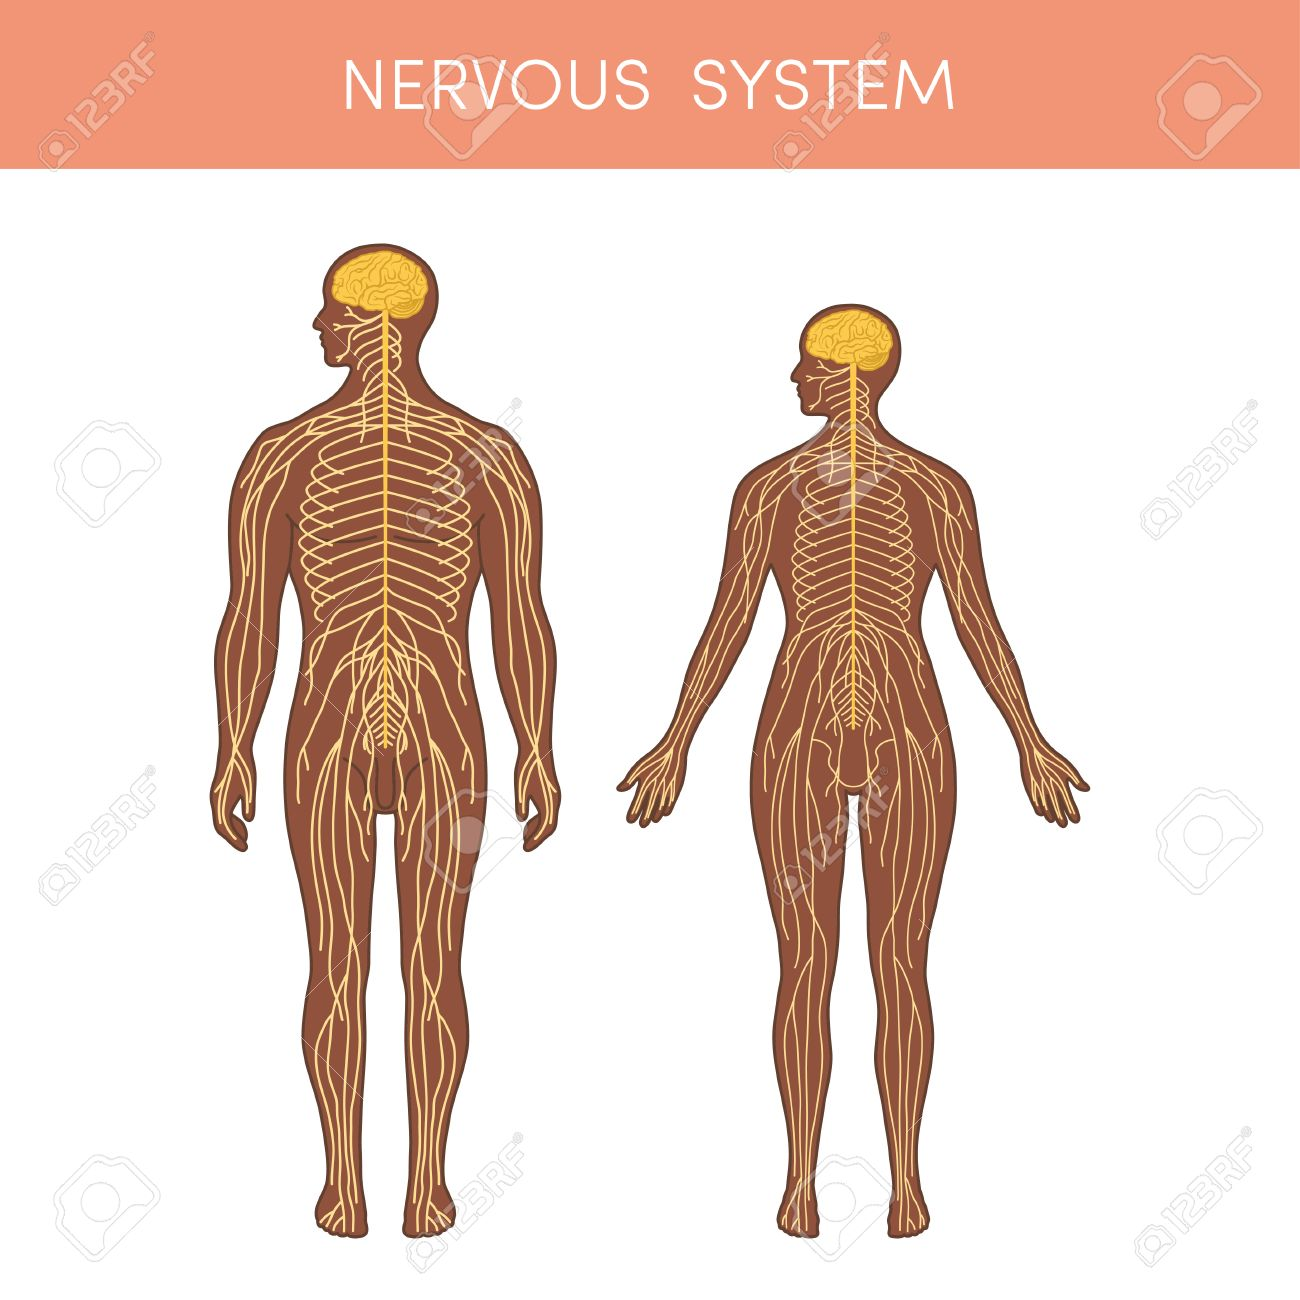 The Nervous System Of A Human. Cartoon Vector Illustration For ...